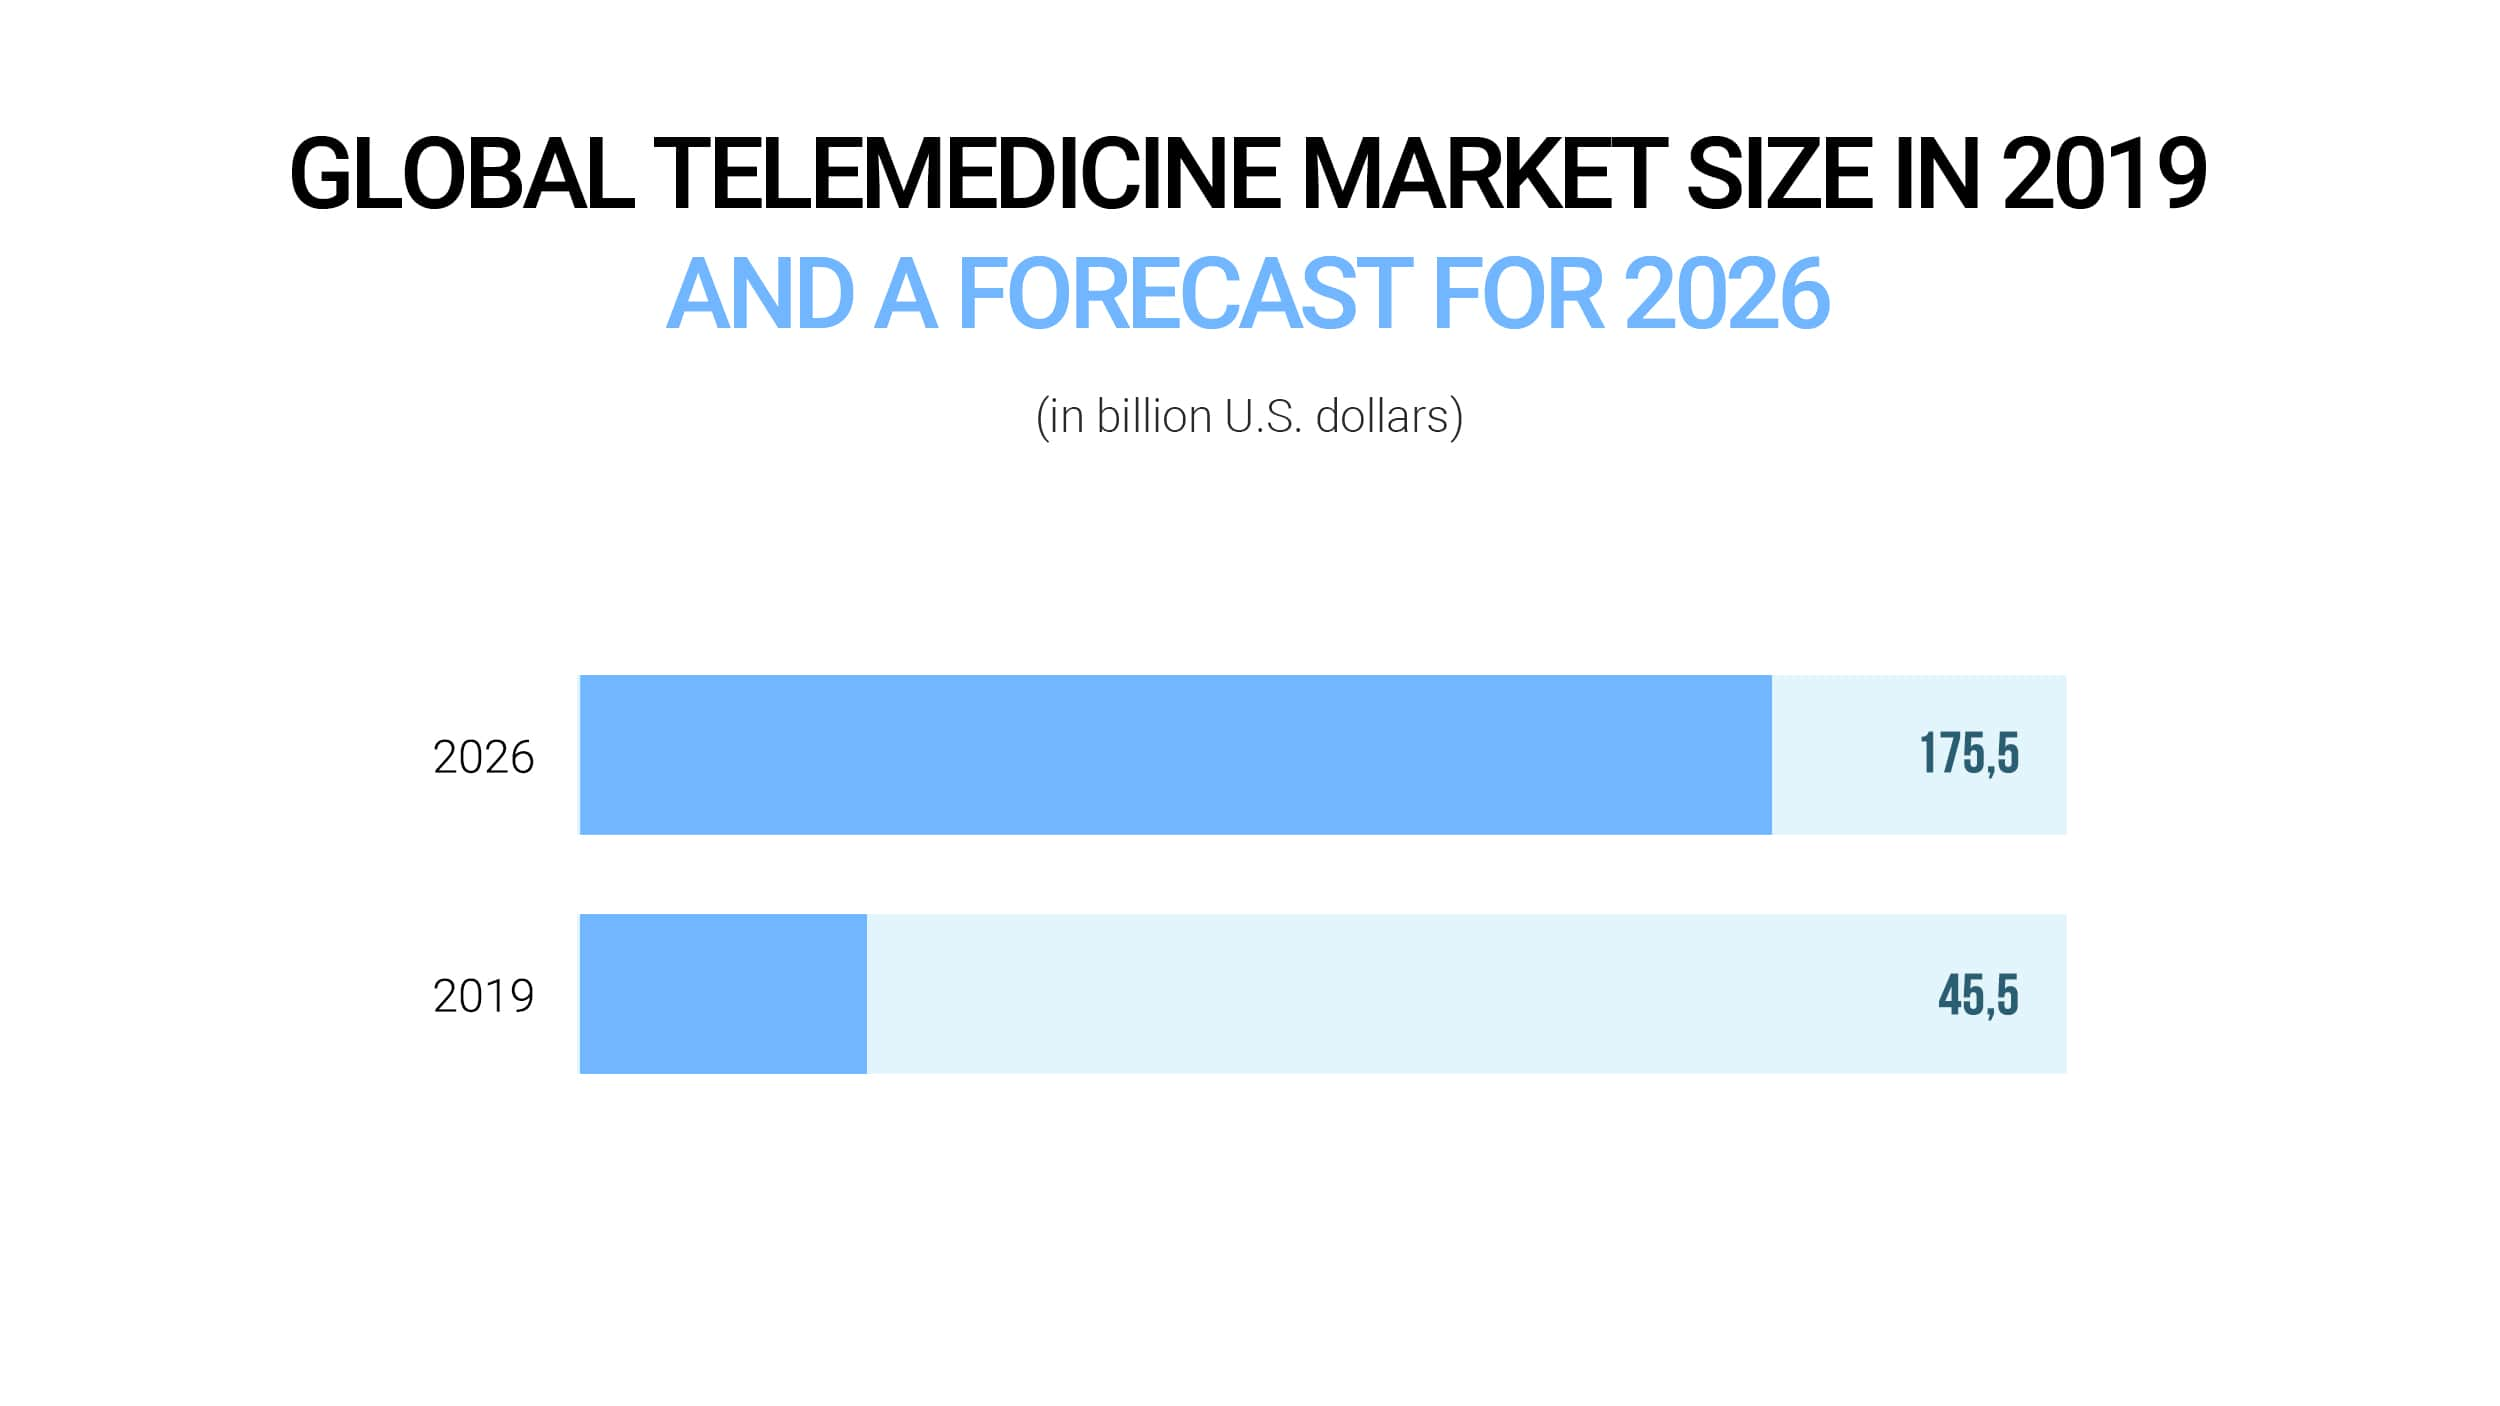 Global telemedicine market size in 2019 and a forecast for 2026